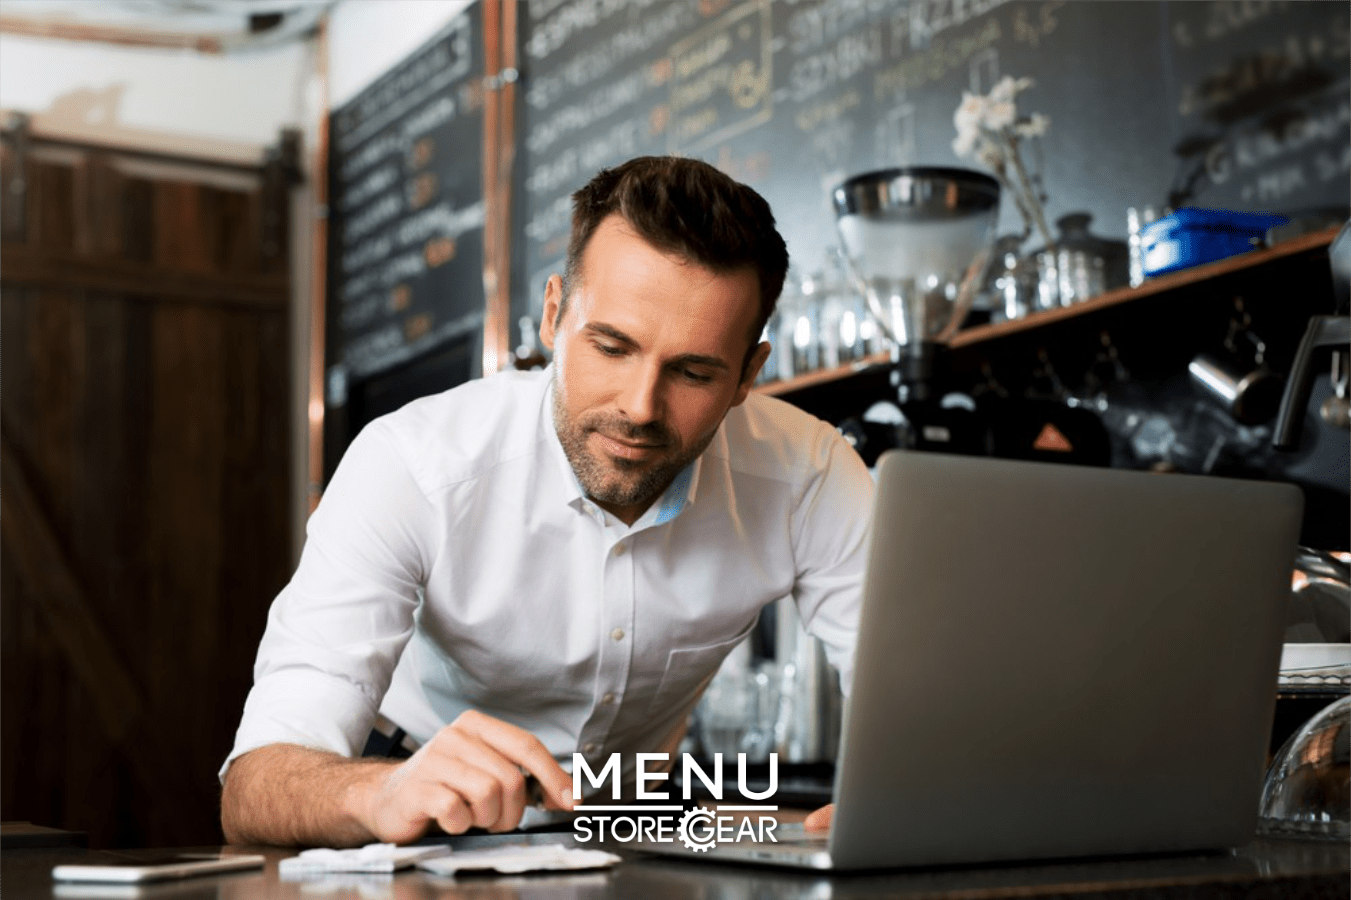 Easy-to-update online food ordering menu for restaurant owners